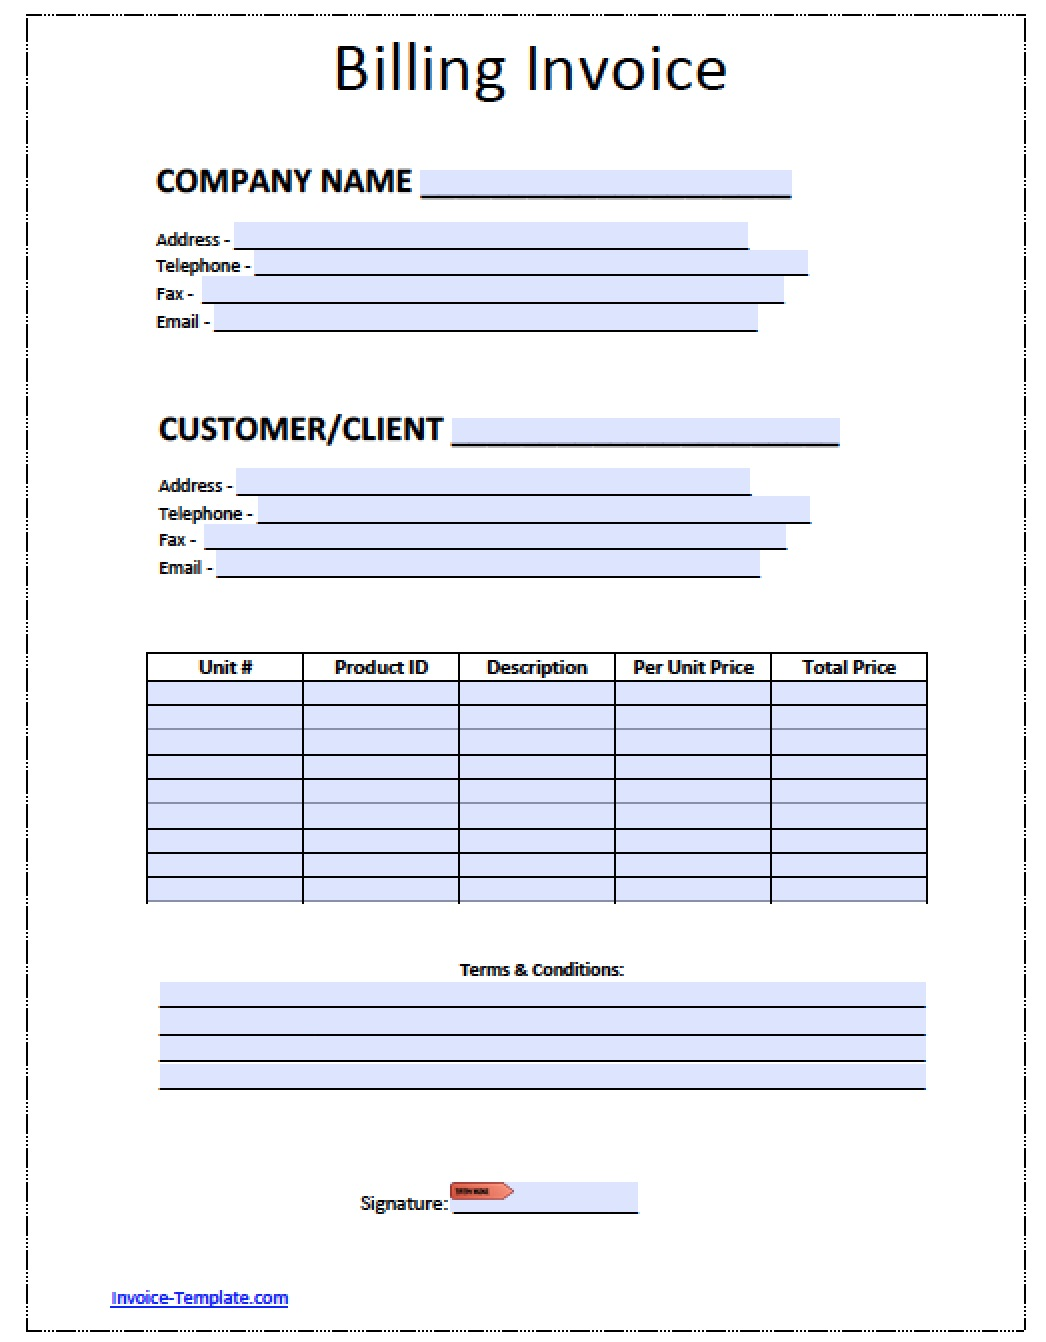 Totallocalus  Splendid Billing Invoice Invoices Faq U Cloudflare Support Billing  With Handsome Free Billing Invoice Template  Excel  Pdf  Word Doc  Billing With Cute Free Business Invoice Also Invoice Price New Car In Addition How Do You Make An Invoice And Sample Of Invoice For Services As Well As Sample Catering Invoice Additionally Automotive Invoices From Happytomco With Totallocalus  Handsome Billing Invoice Invoices Faq U Cloudflare Support Billing  With Cute Free Billing Invoice Template  Excel  Pdf  Word Doc  Billing And Splendid Free Business Invoice Also Invoice Price New Car In Addition How Do You Make An Invoice From Happytomco